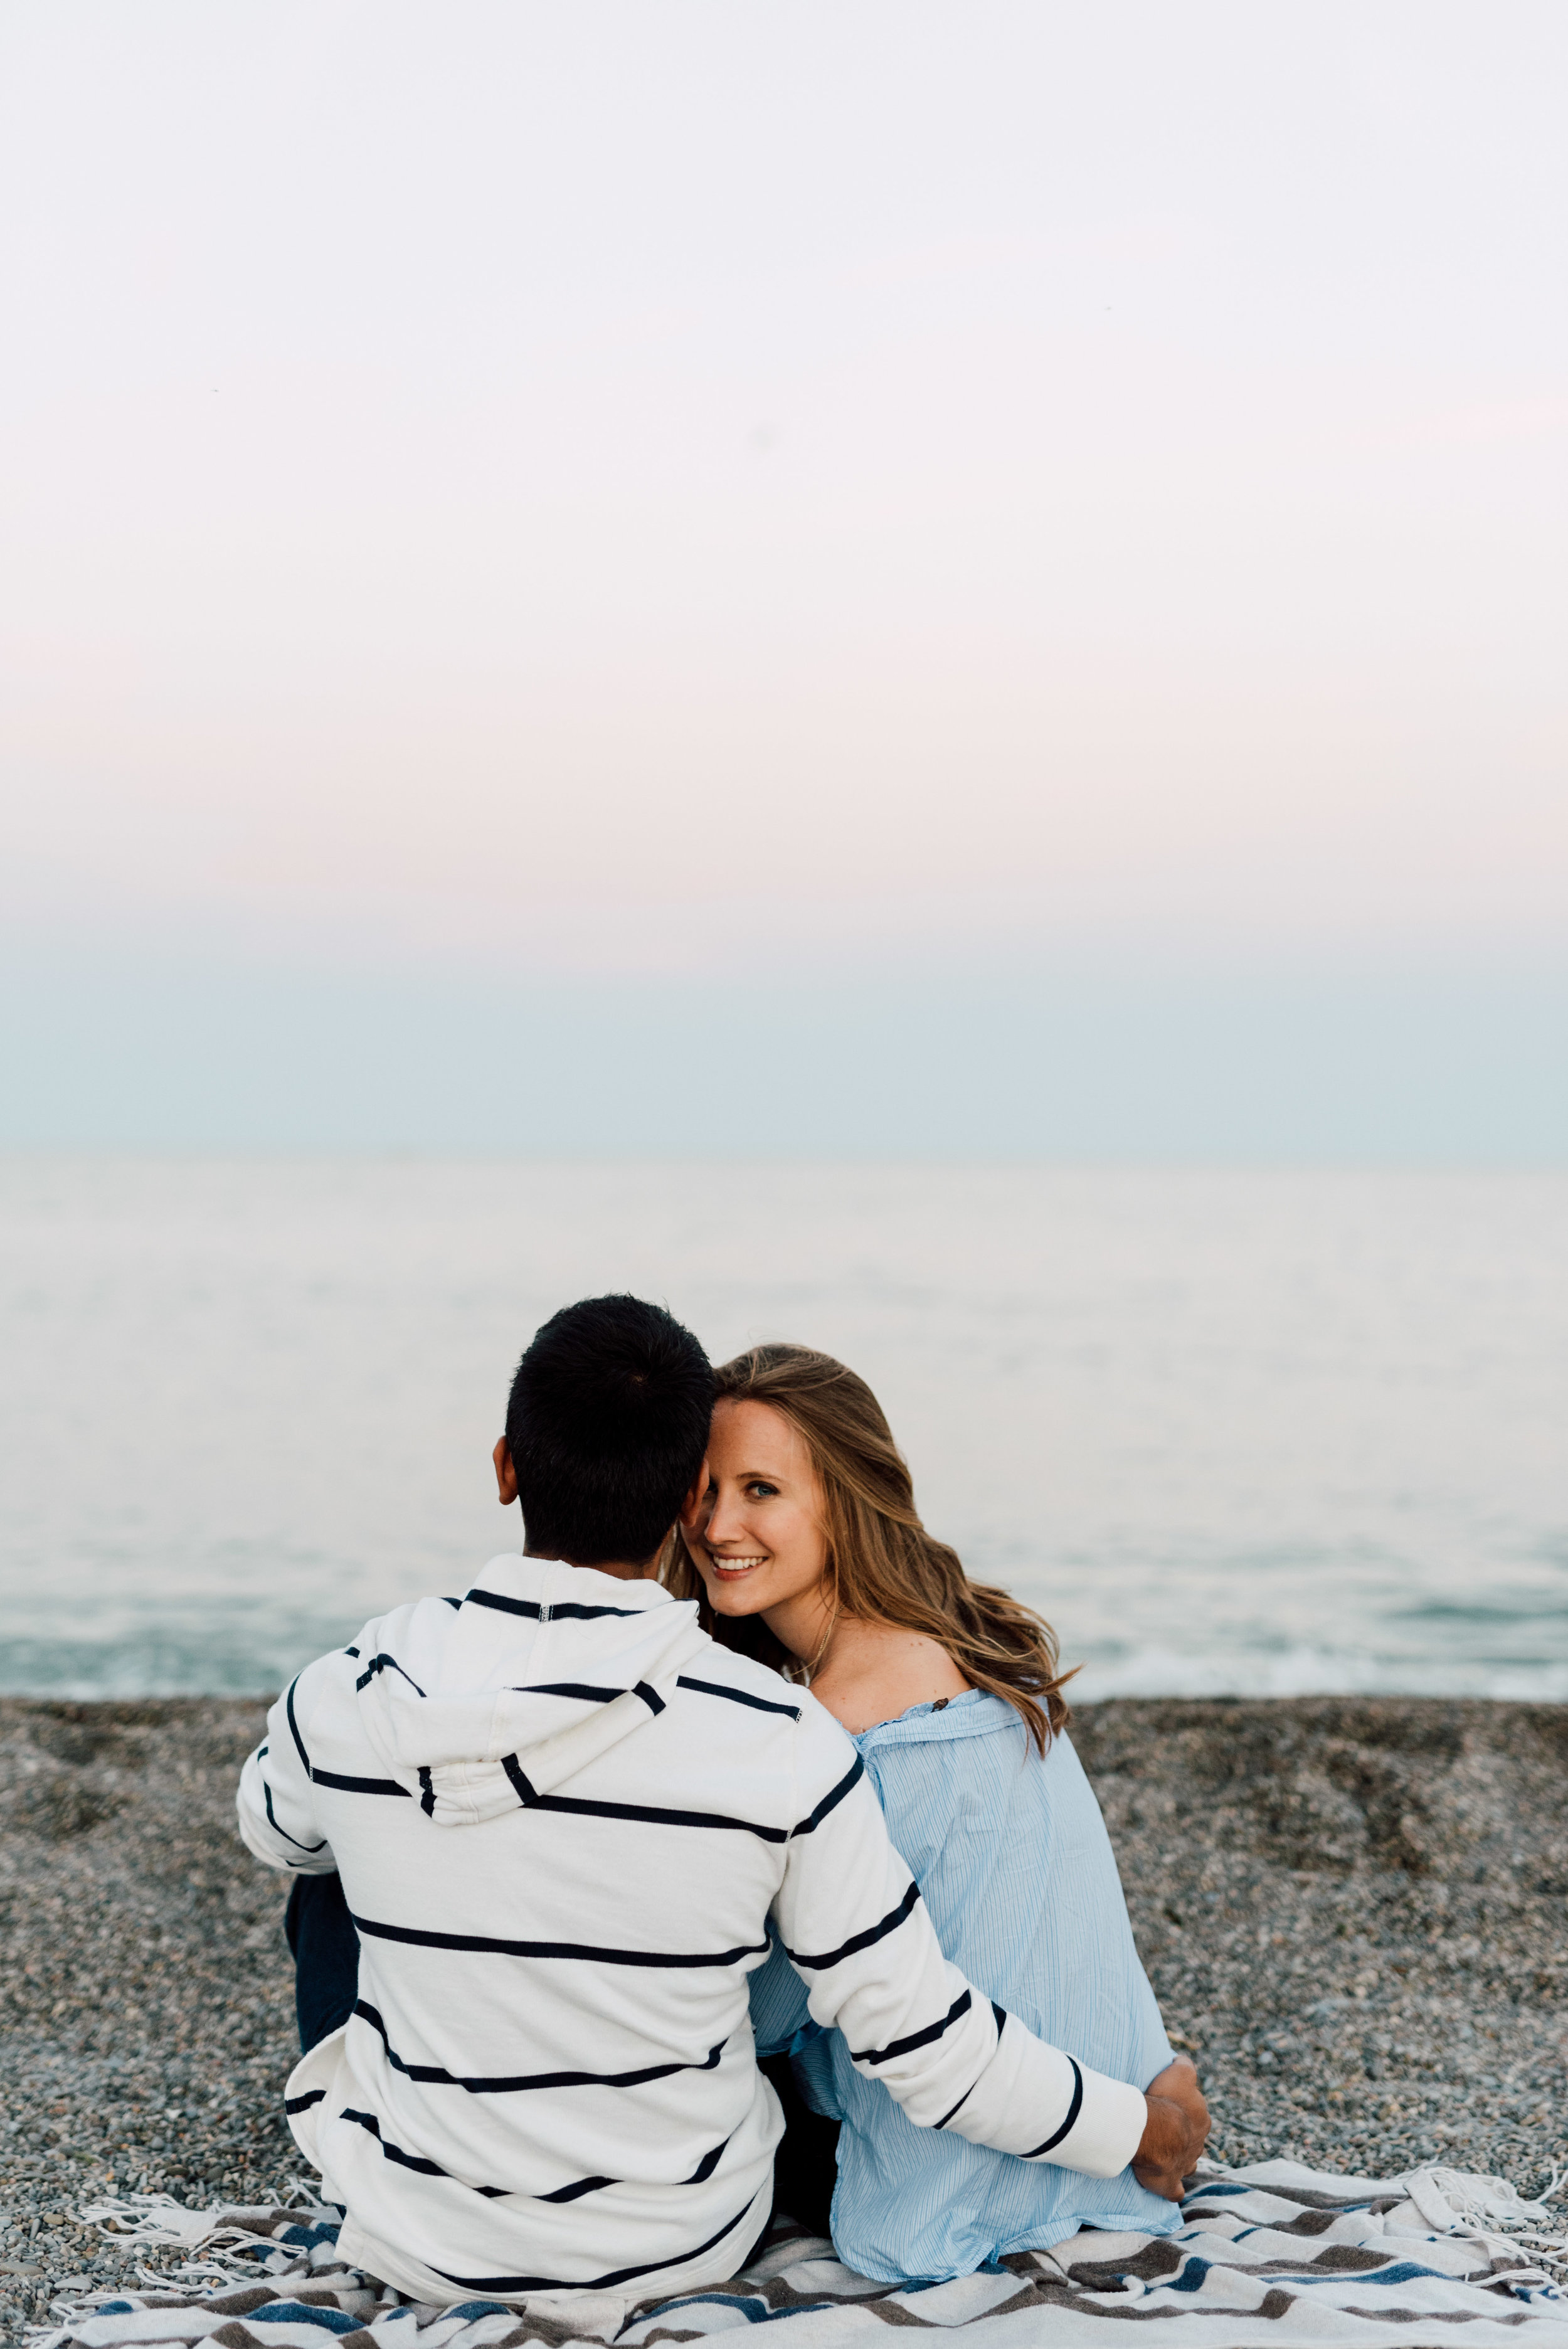 Engagement photography_Rajan&Emily_youthebest (21 of 24).jpg